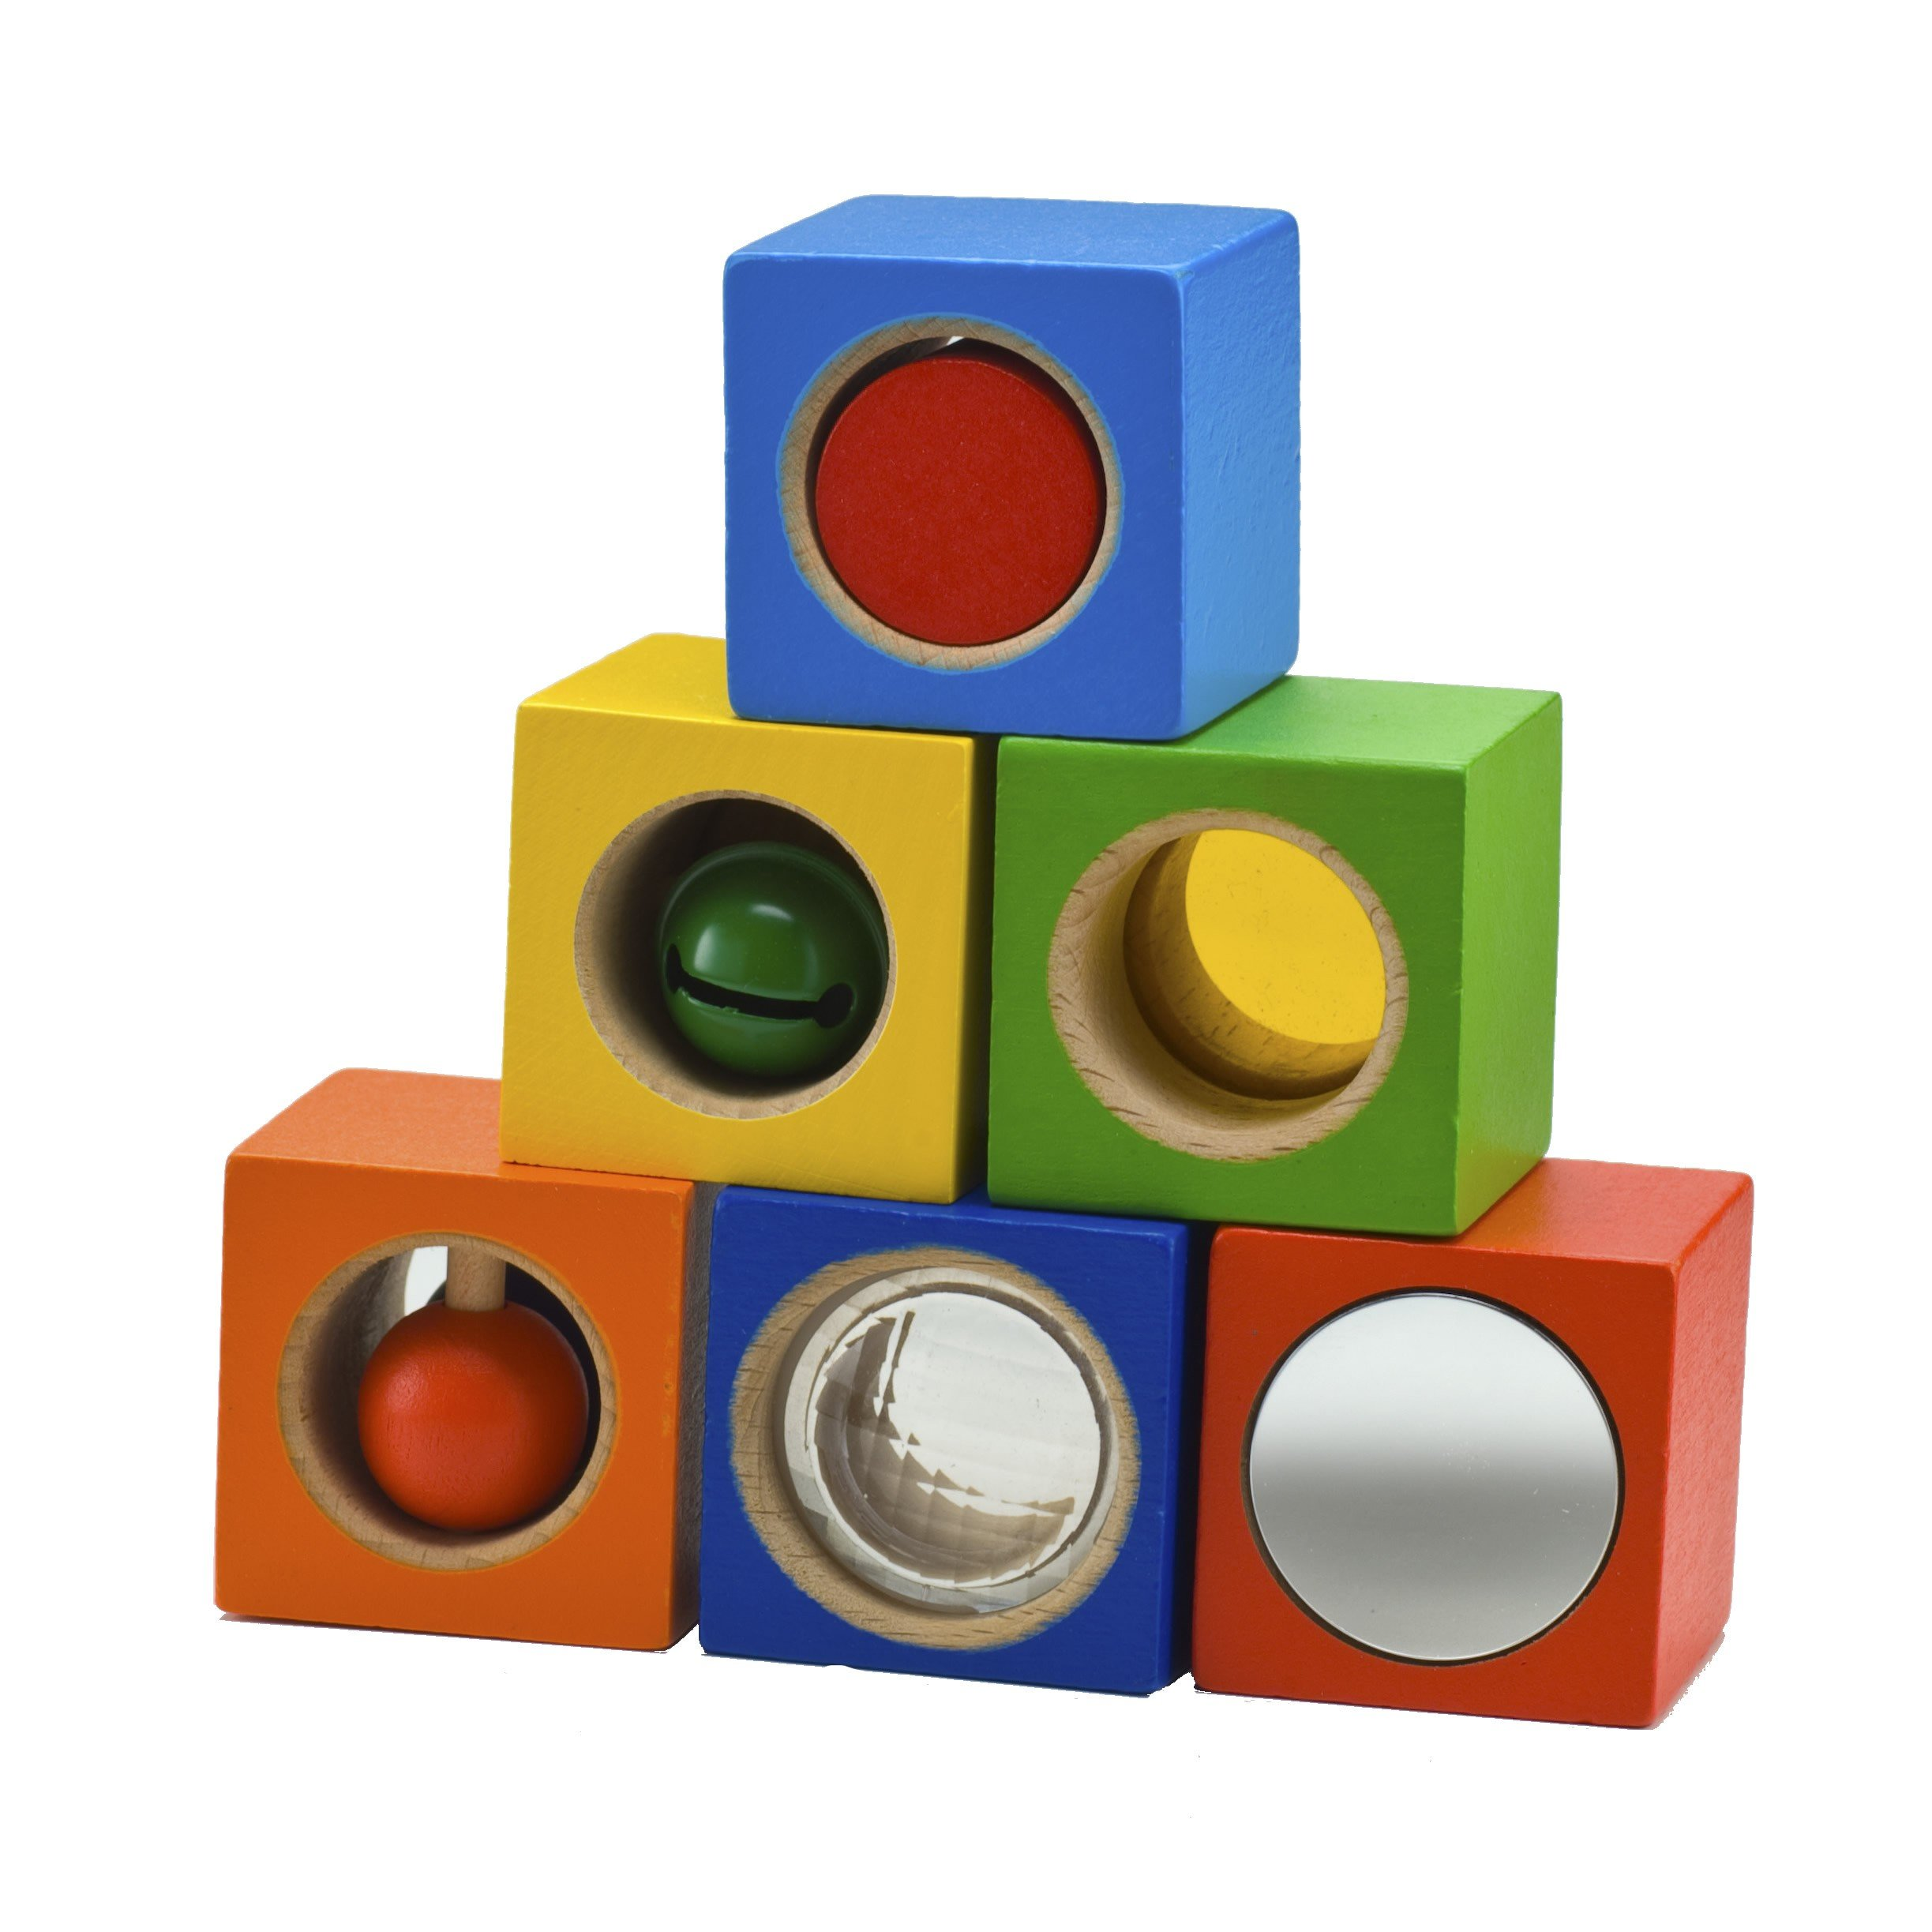 HABA Stack & Learn Blocks - 6 Colorful Wooden Cubes with Accoustic & Optical Effects for Ages 12 Months and Up